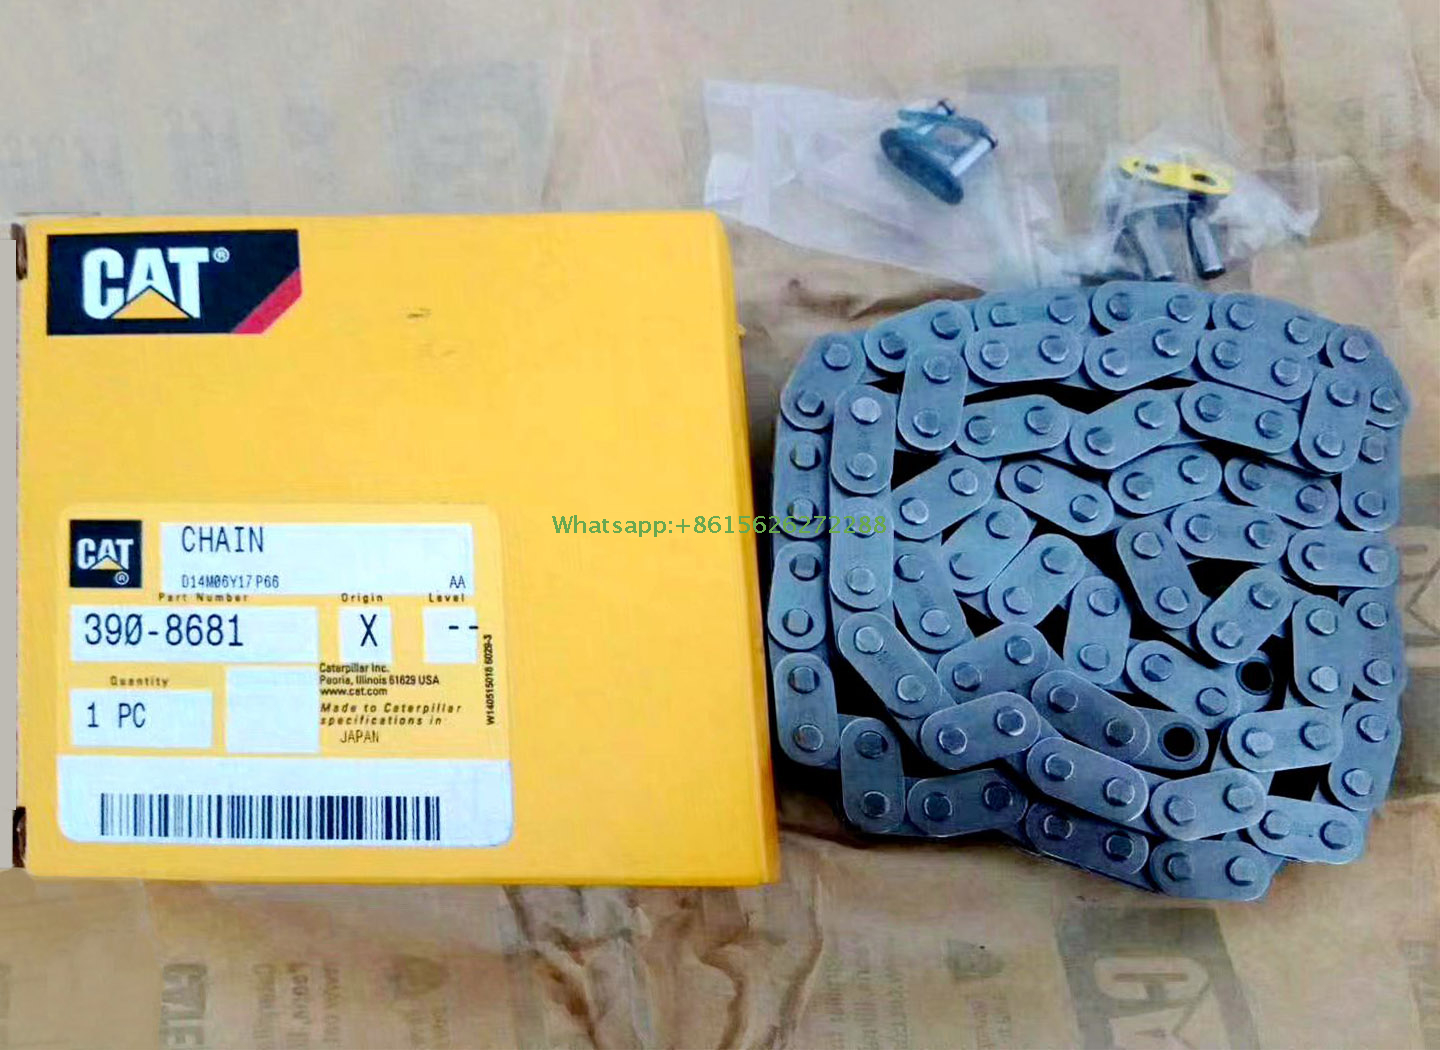 Caterpillar 390-8681 CHAIN